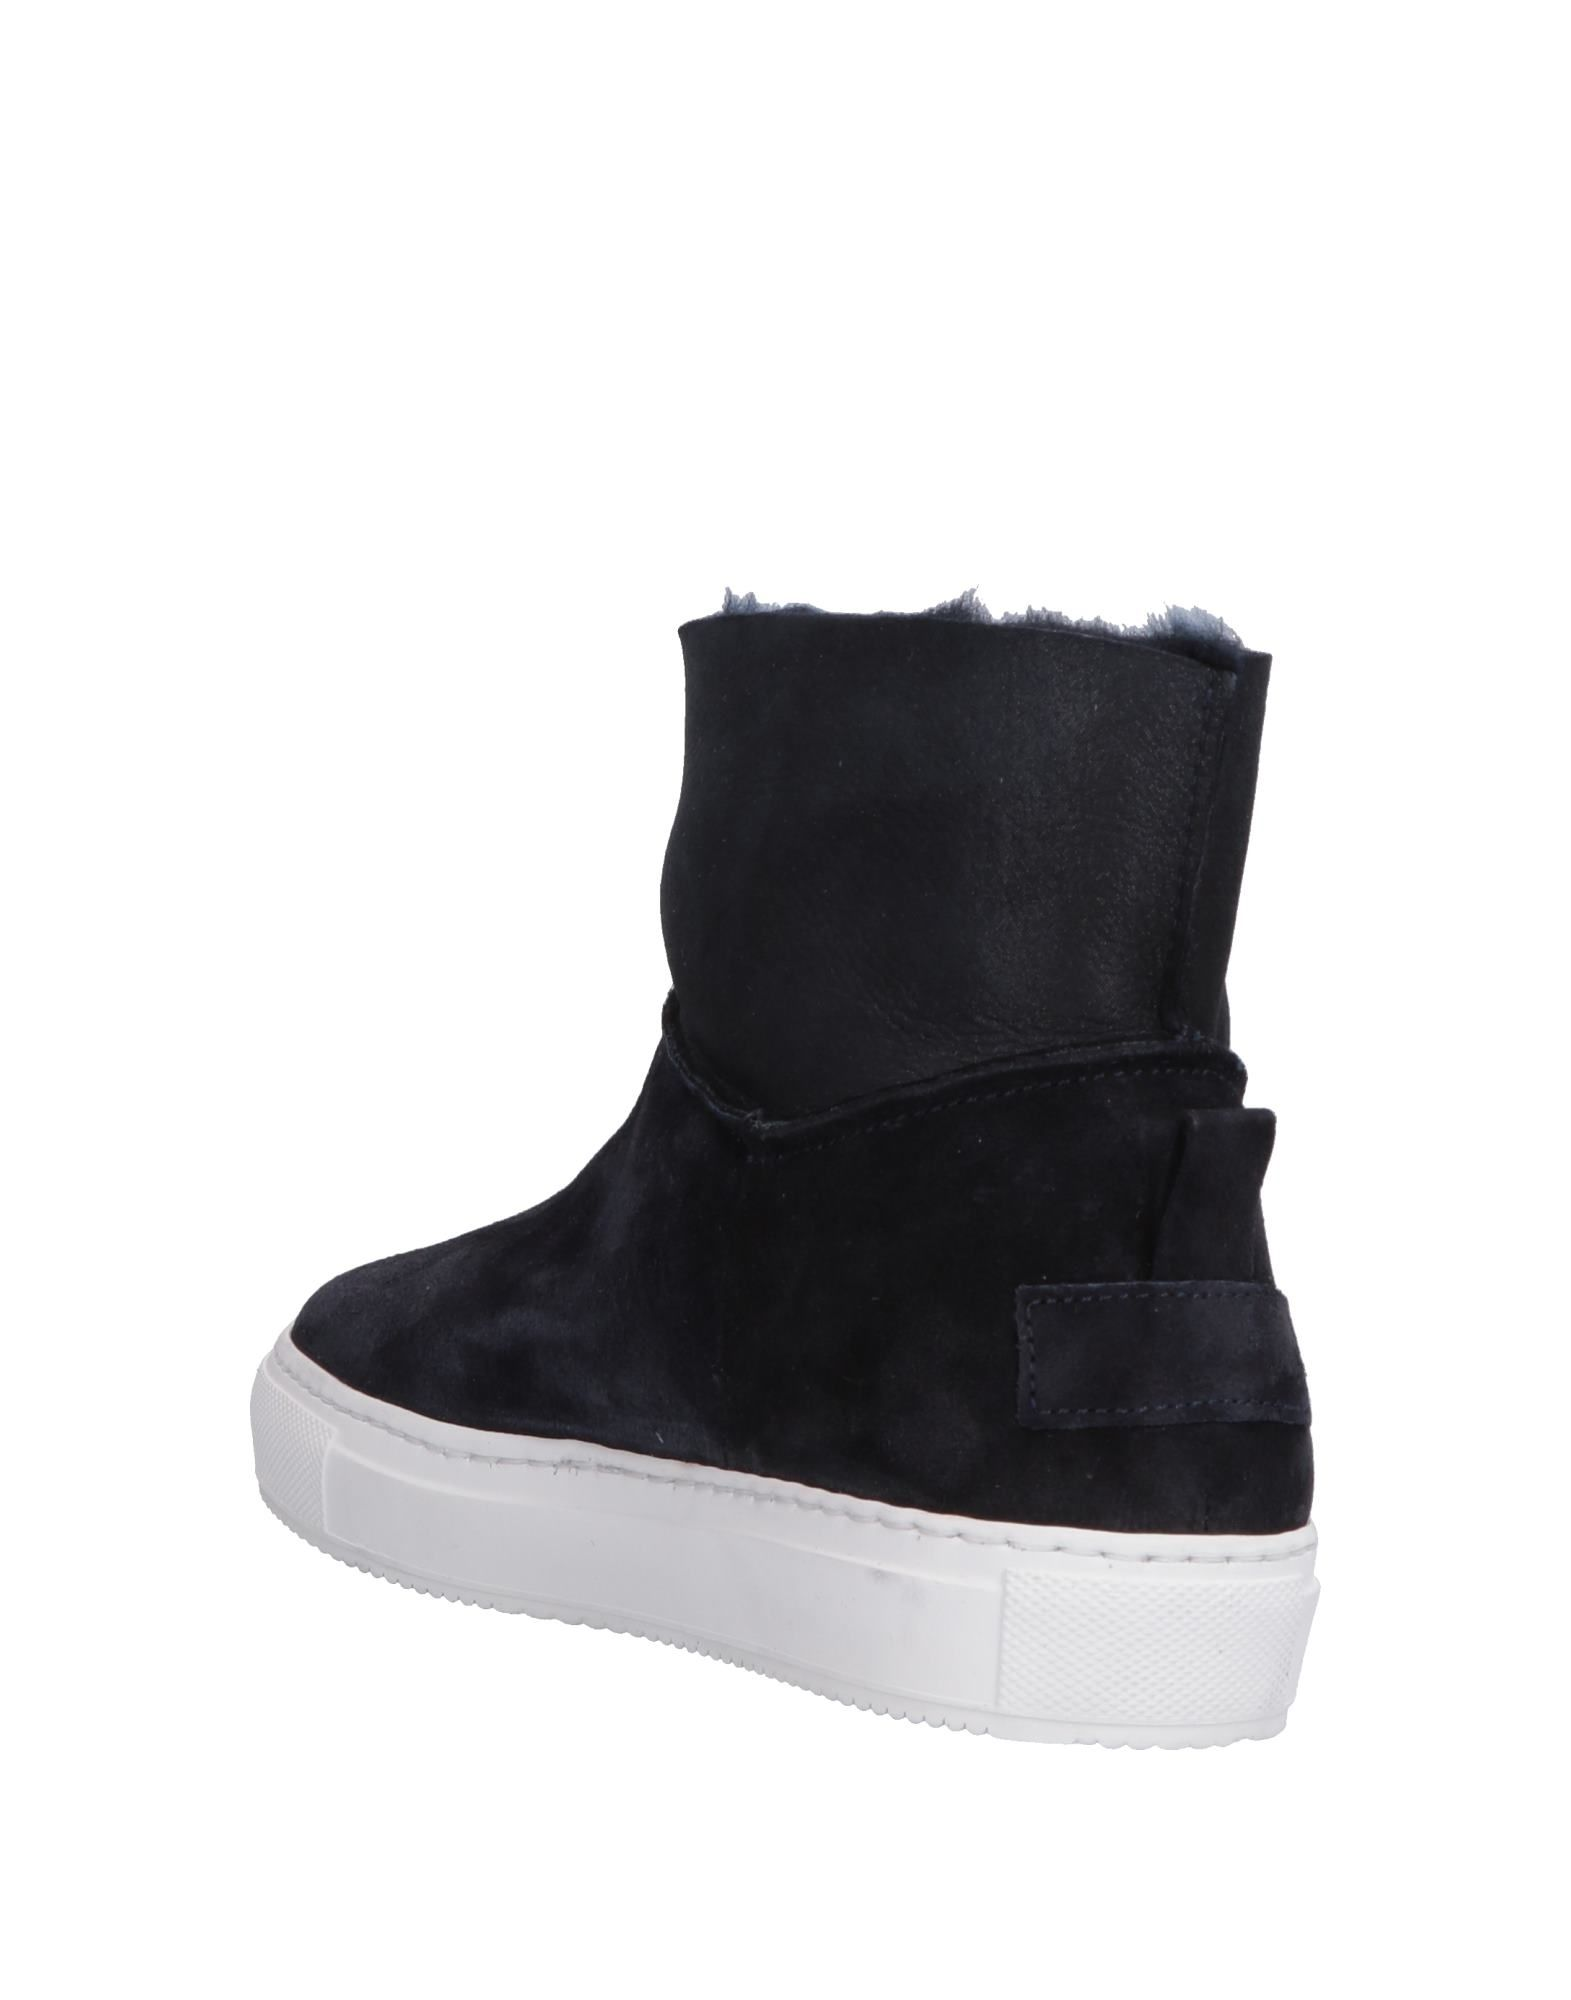 Boemos Ankle Boot - Women Boemos Ankle Ankle Ankle Boots online on  United Kingdom - 11577232RQ 1f5657